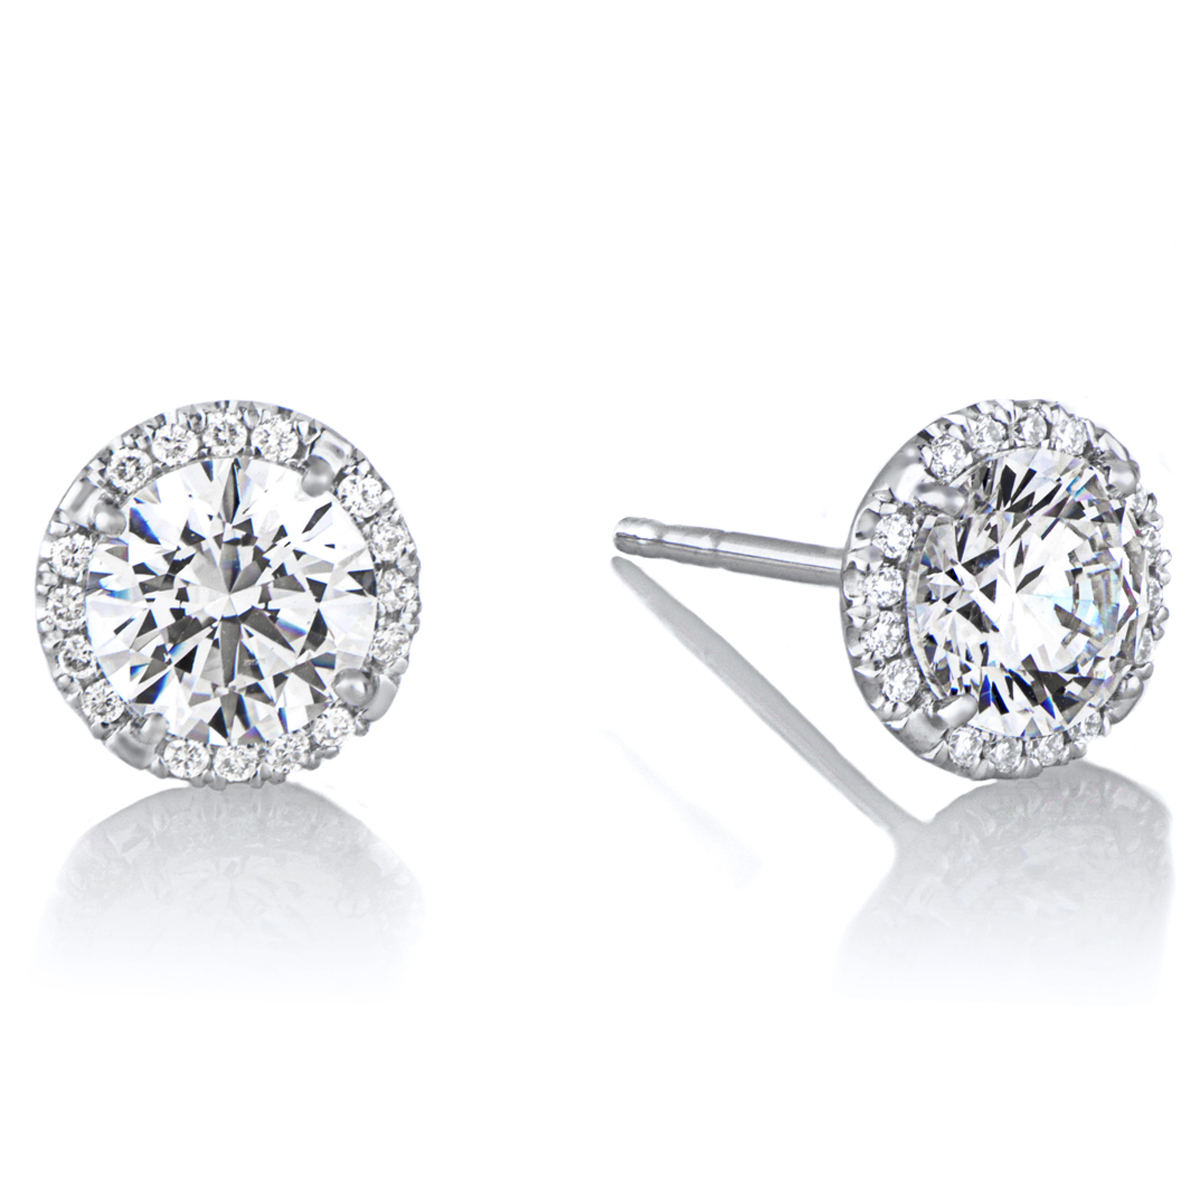 stud earrings roll off image to close zoom window ondacqq